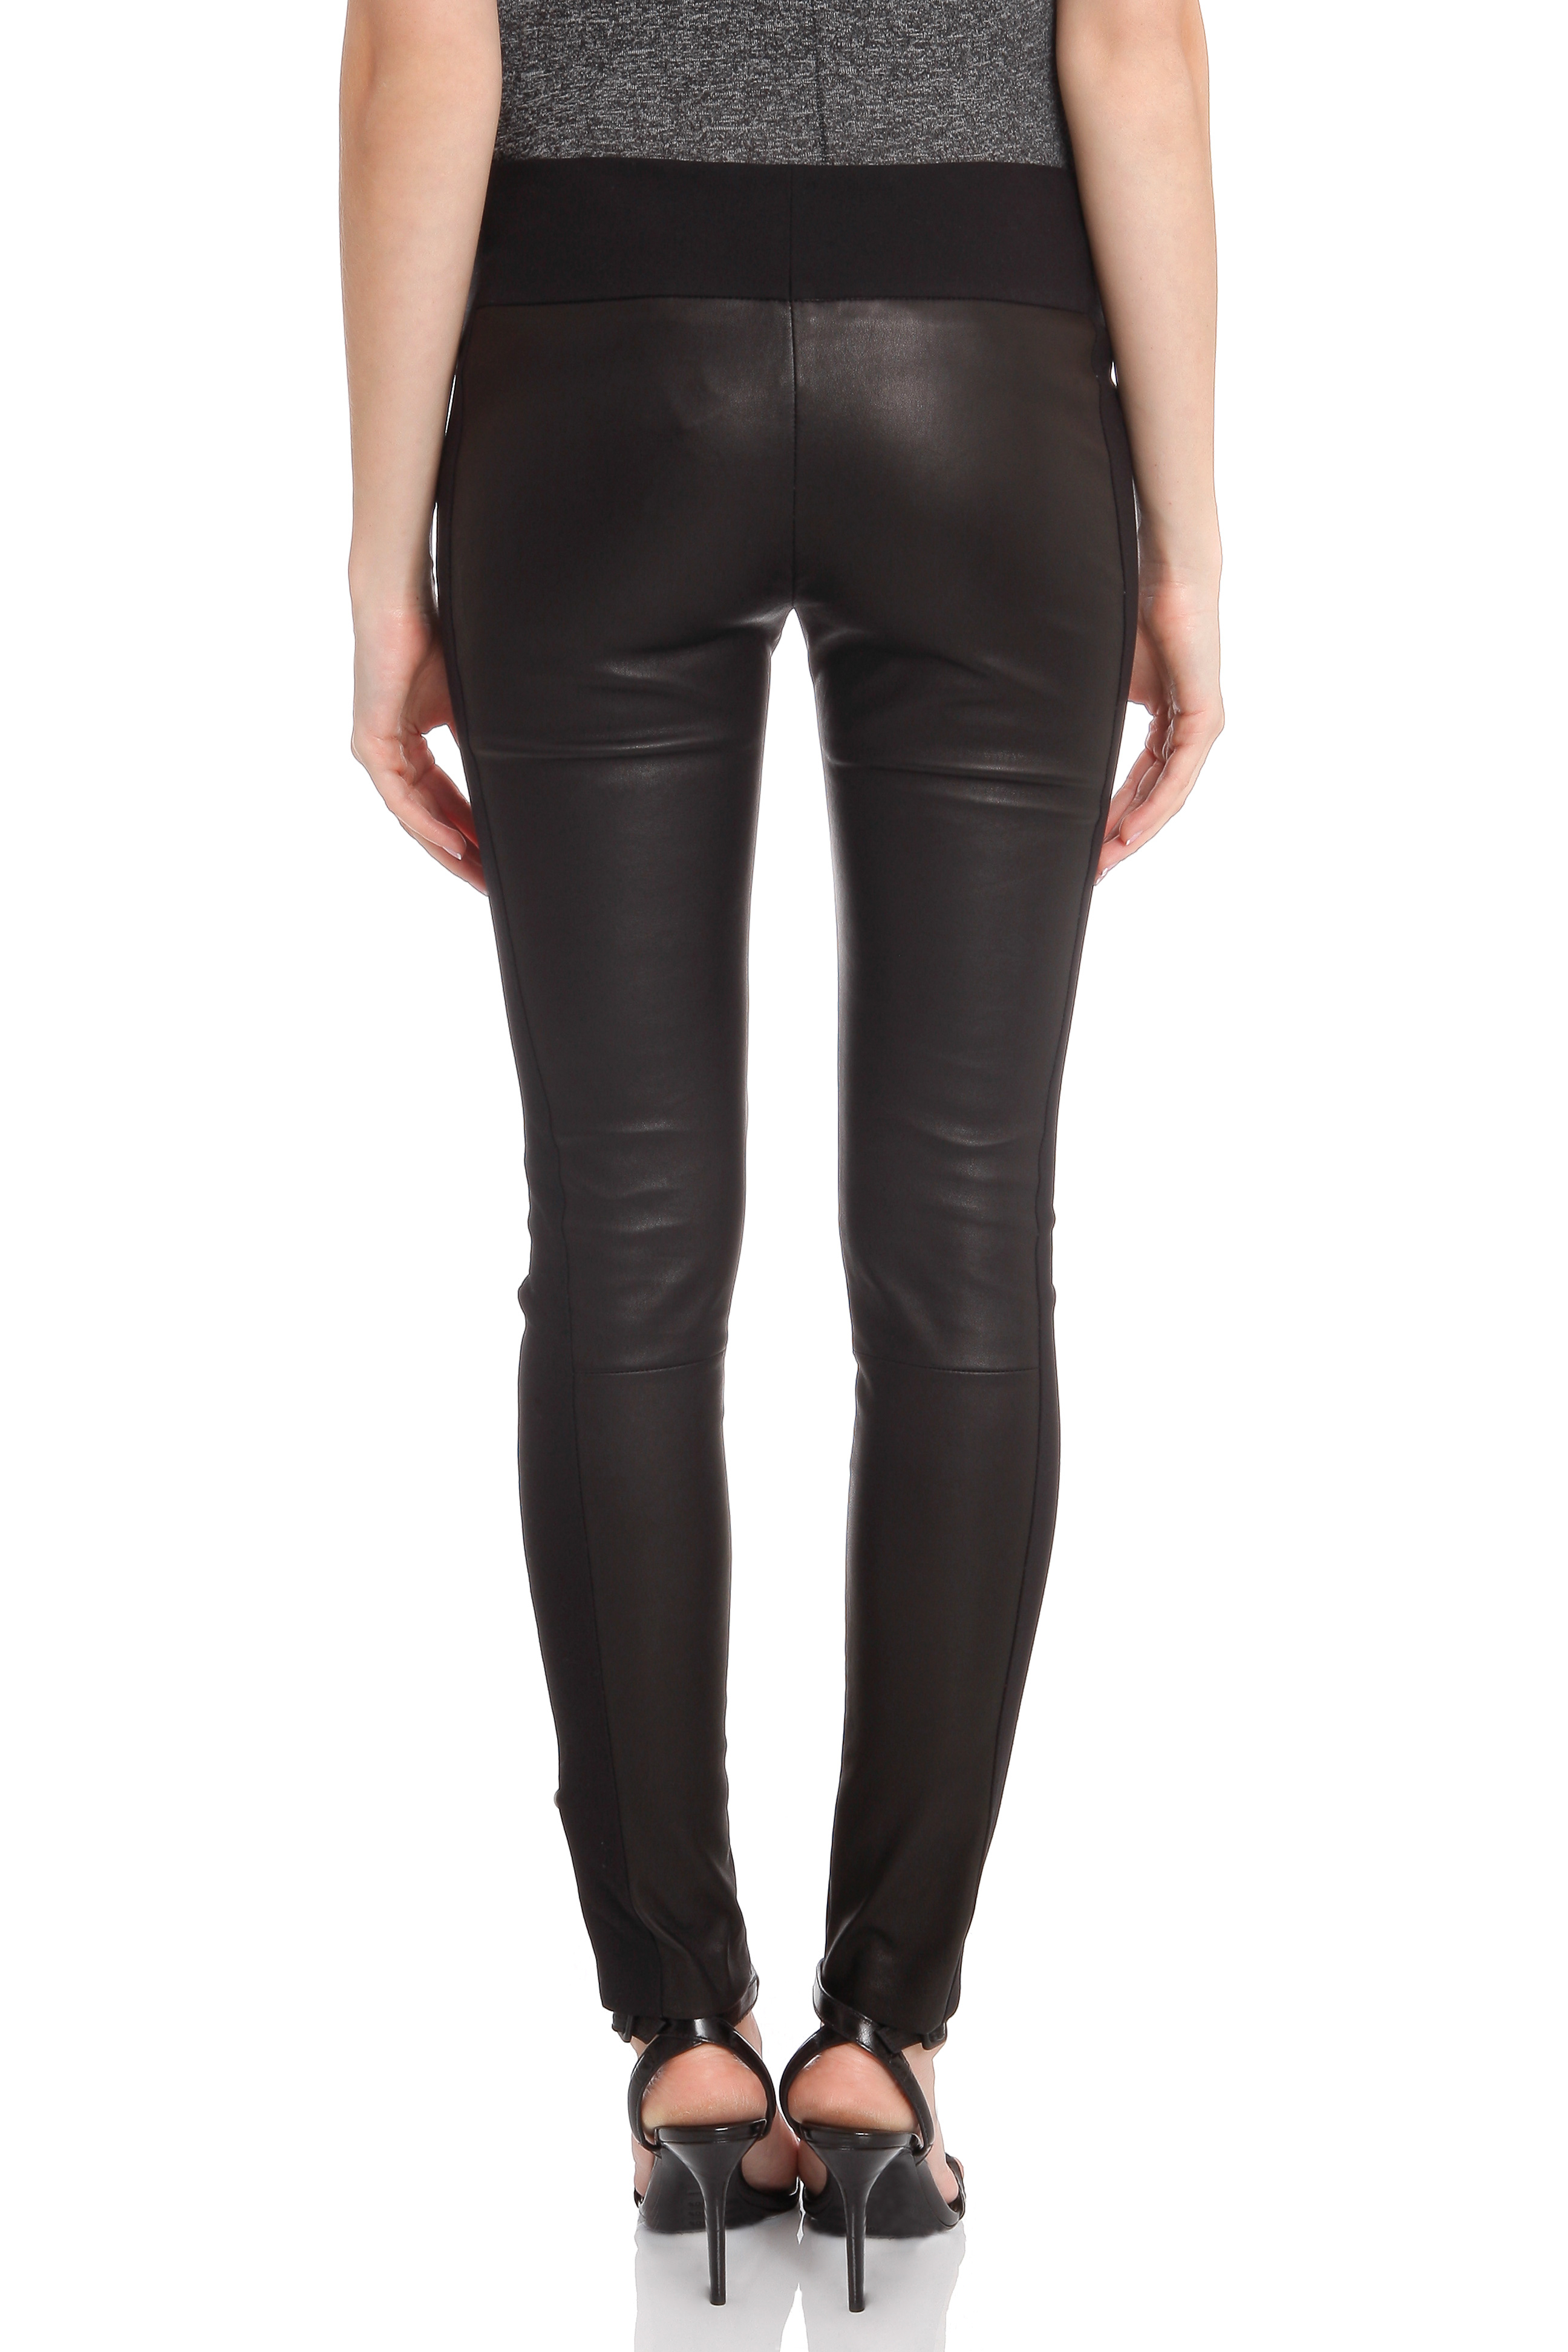 "High waisted black and vegan ""leather"" panel leggings. Flattering faux leather,black panel, runs the length of a the pants out side thigh. This trendy feature makes these great for going out, comforta."